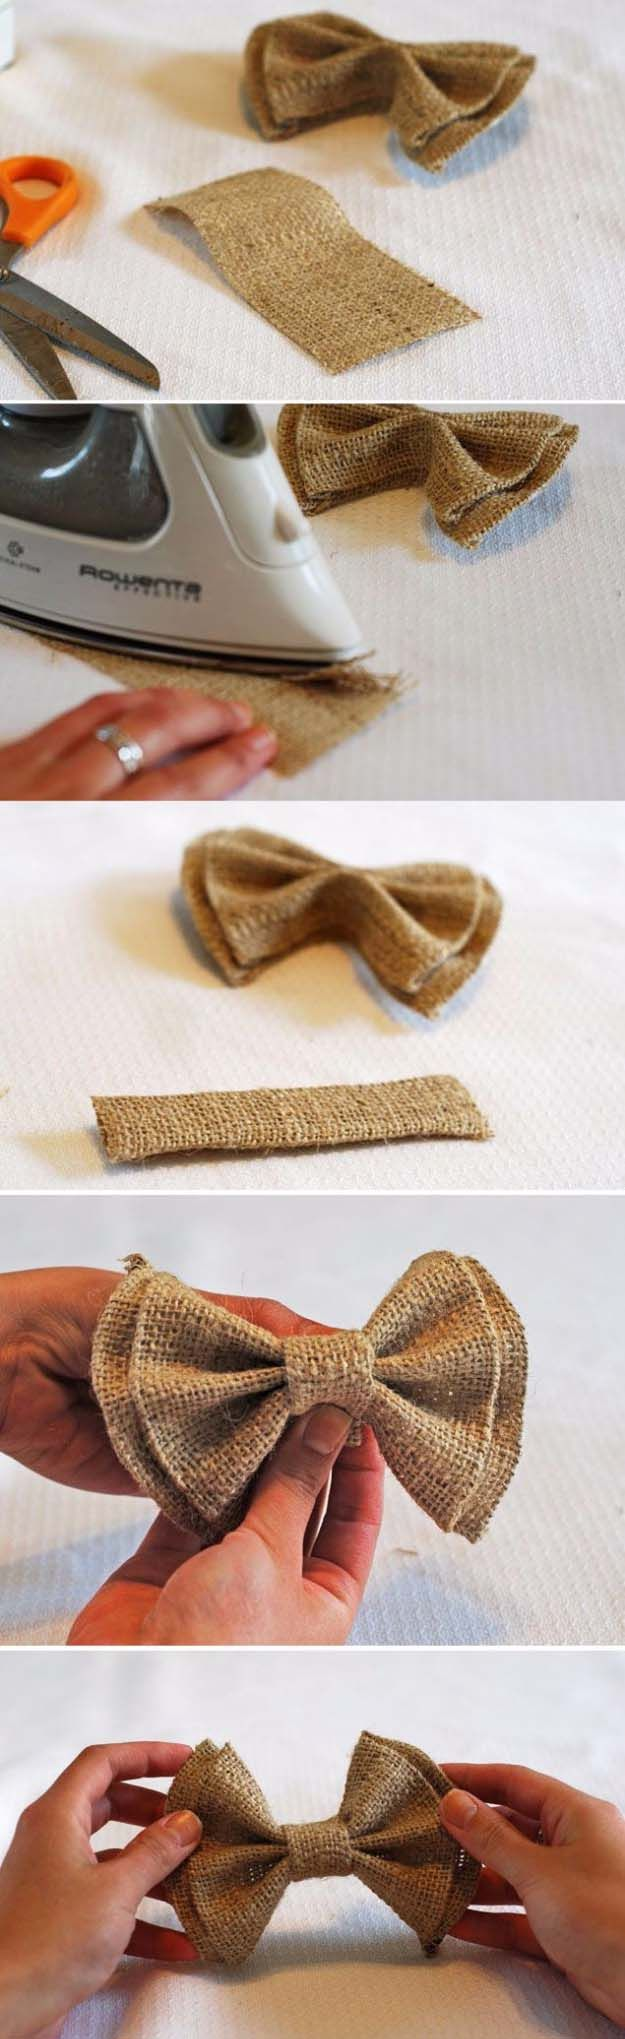 best 20+ burlap crafts ideas on pinterest | burlap decorations